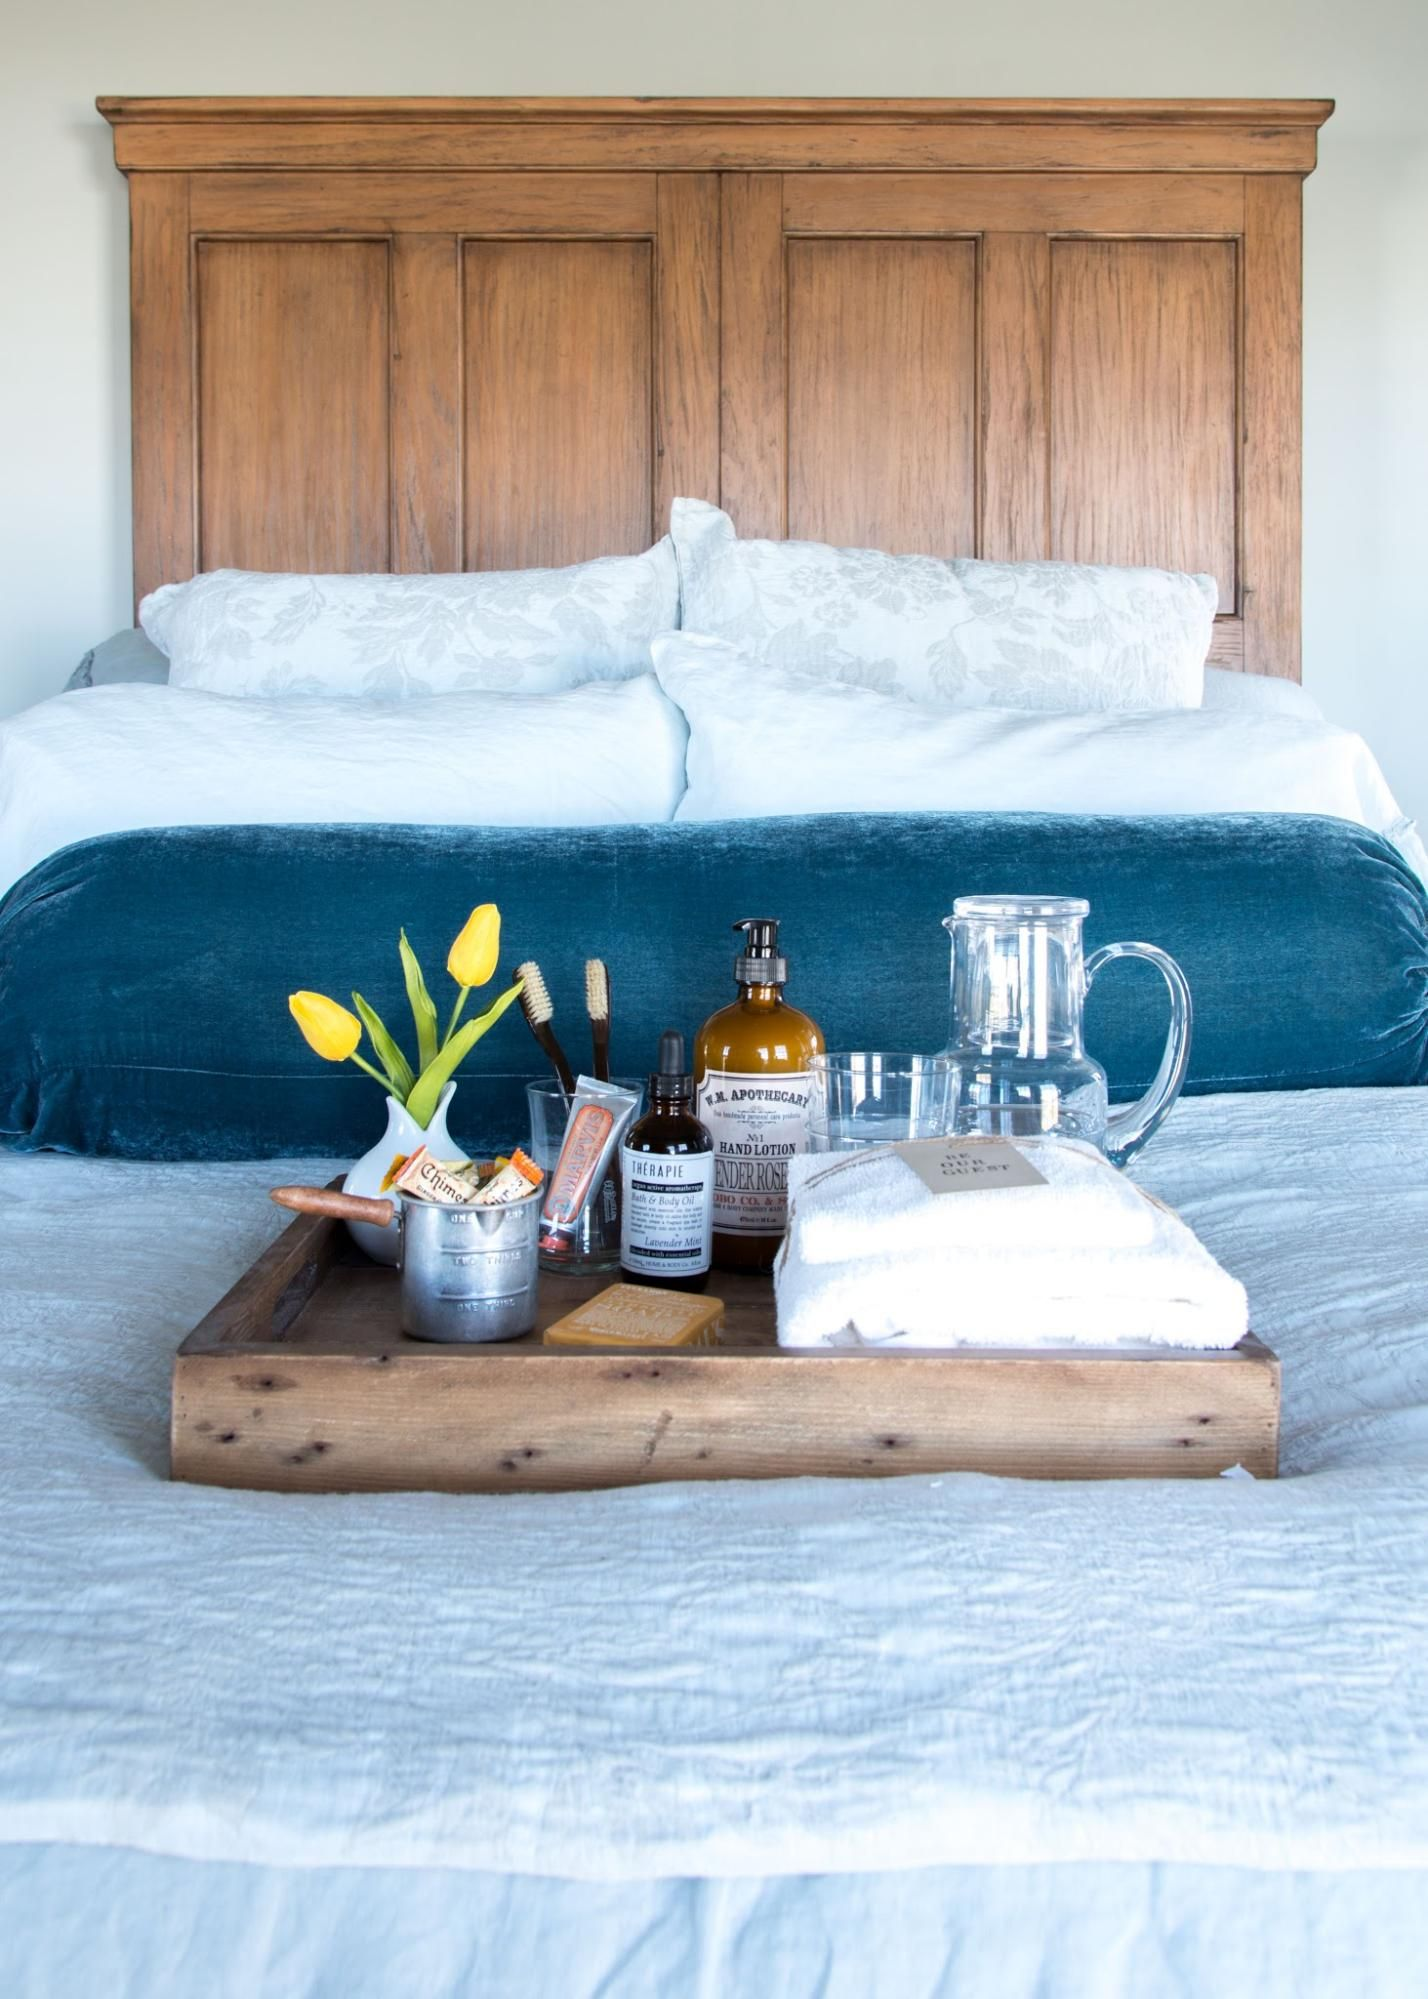 Welcome Them With A Guest Tray At Home A Blog By Joanna Gaines Guest Room Essentials House Guest Gifts Guest Room